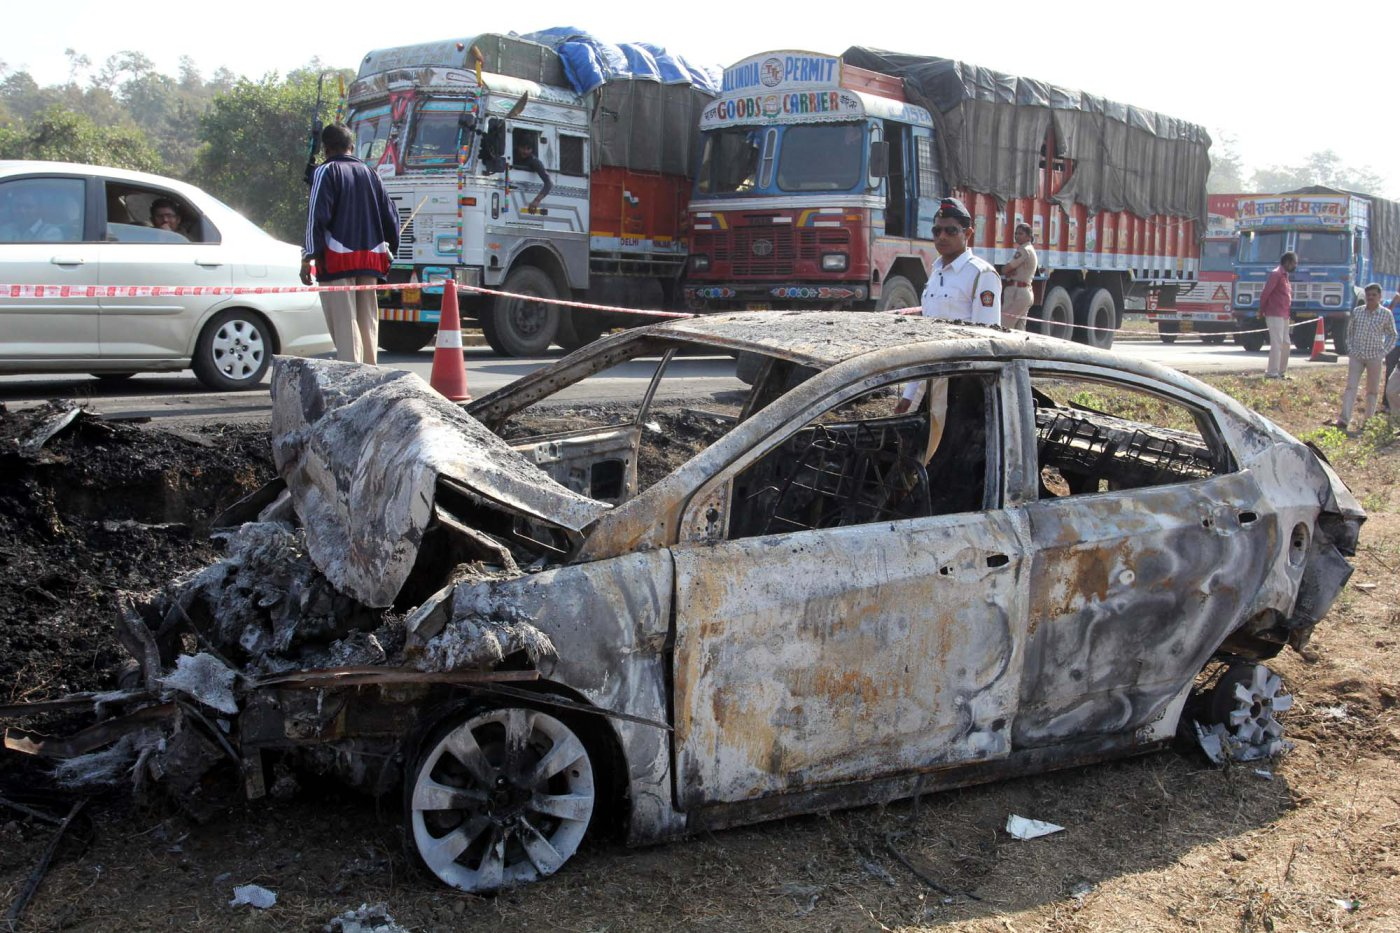 A charred car stands at the accident spot on the Mumbai-Ahmedabad highway near Manor police station following the collision between a tanker containing diesel and a luxury bus on Jan. 29, 2014, in Mumbai, India.